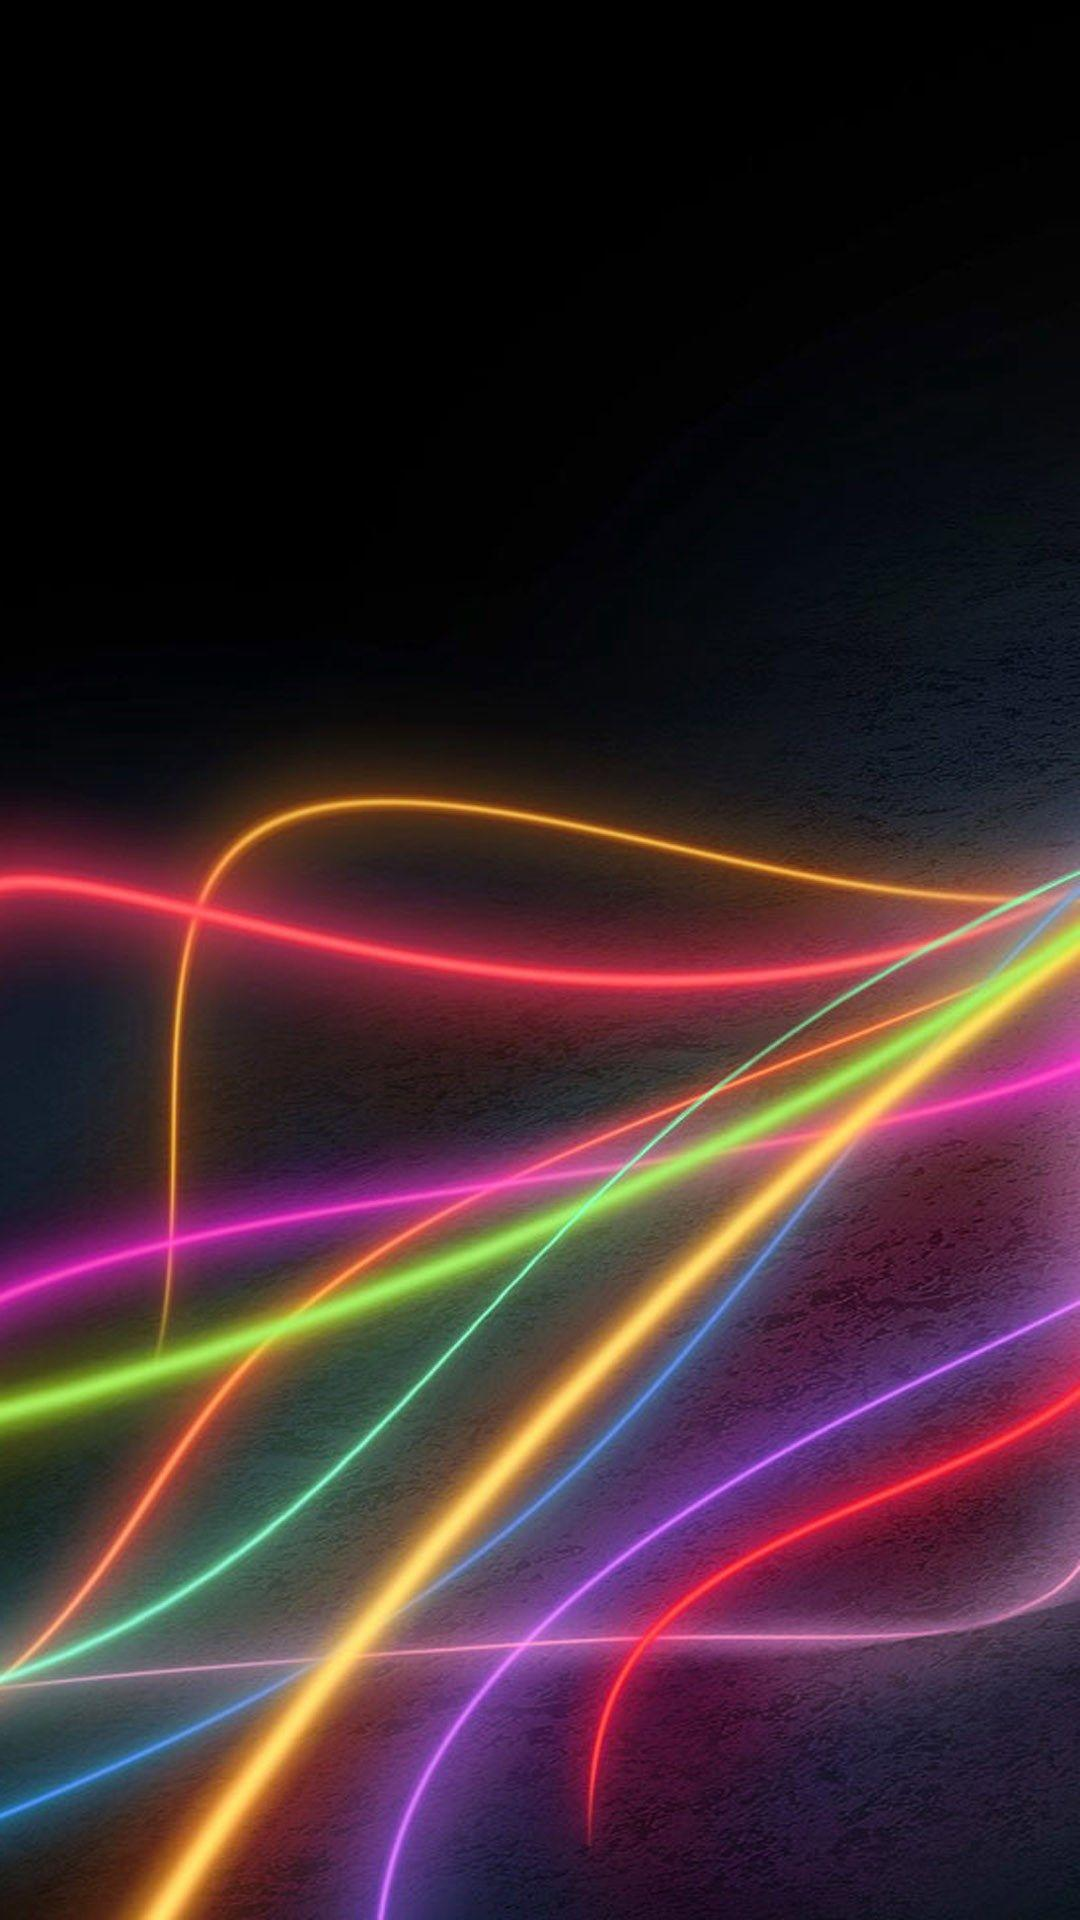 Samsung Galaxy Note 10 Wallpapers - Wallpaper Cave